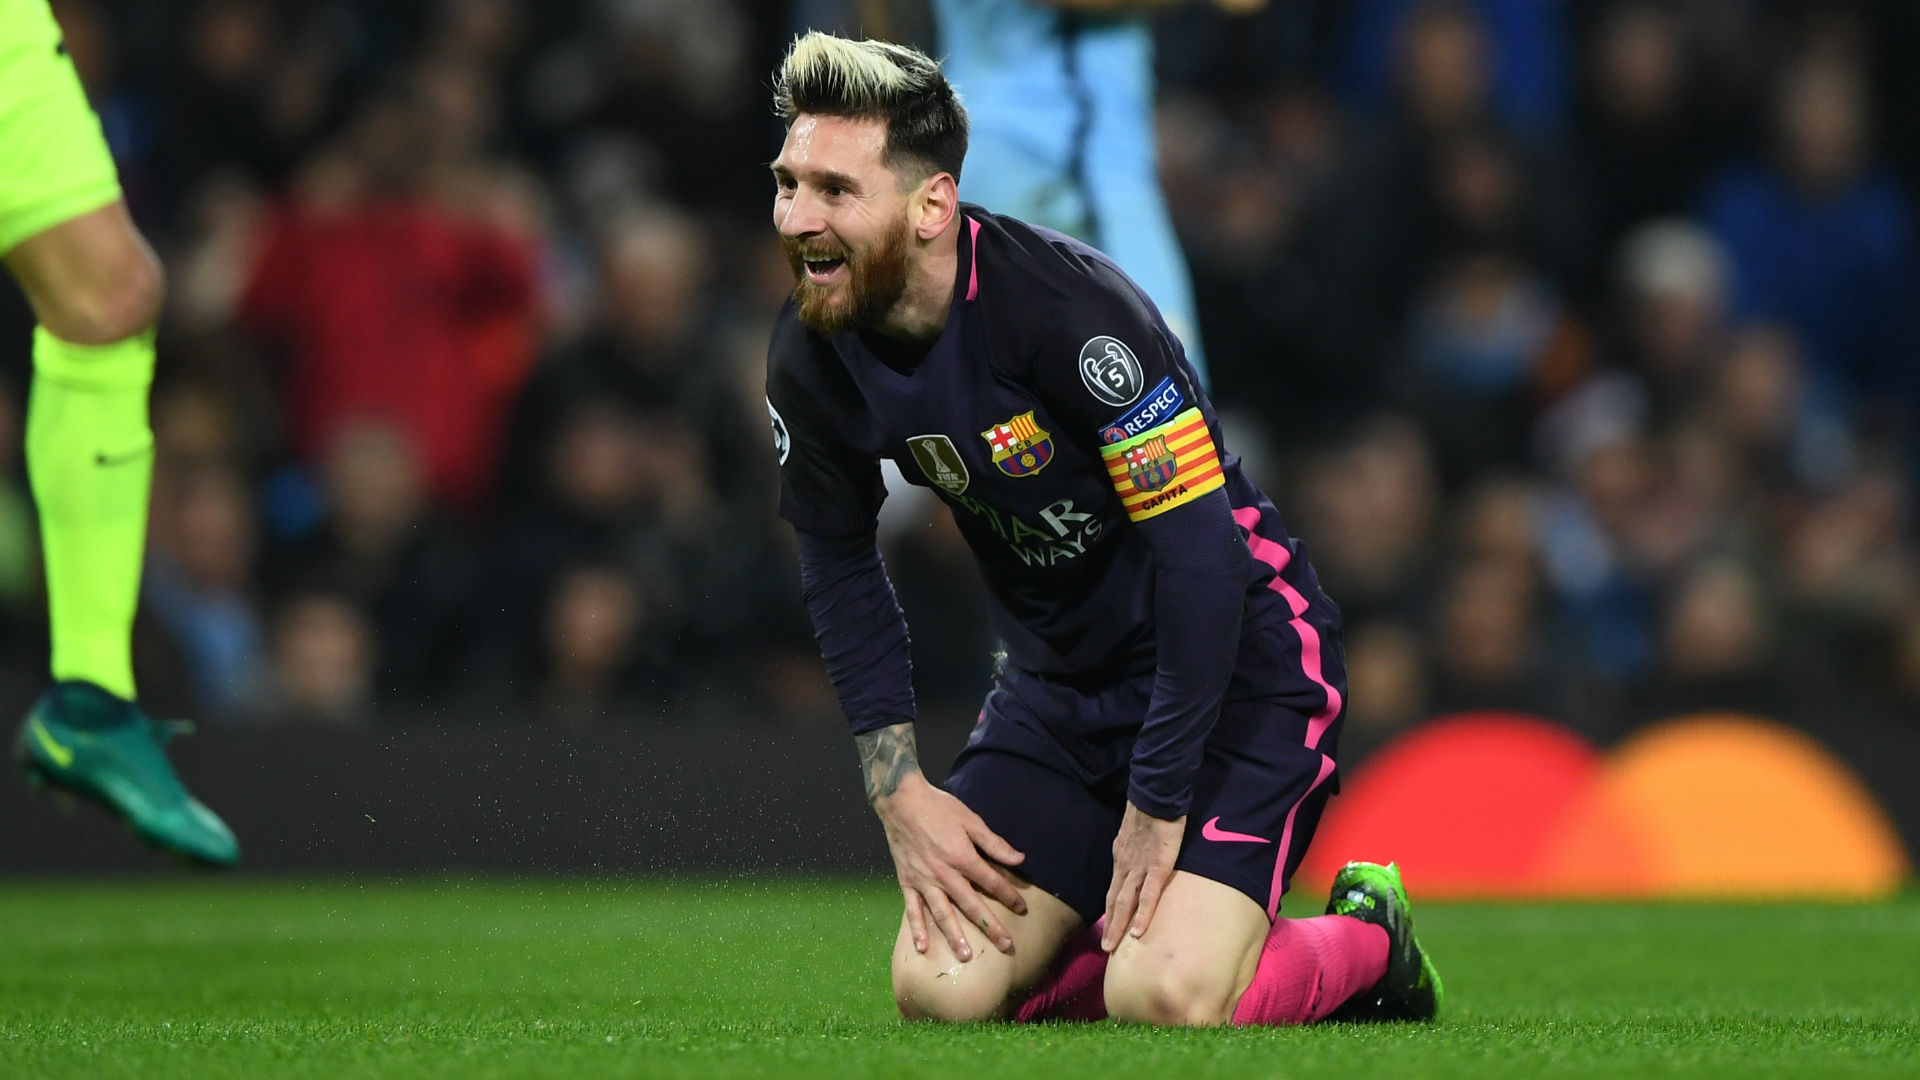 'Messi was in no mood to talk' - Aguero responds to tunnel fight reports